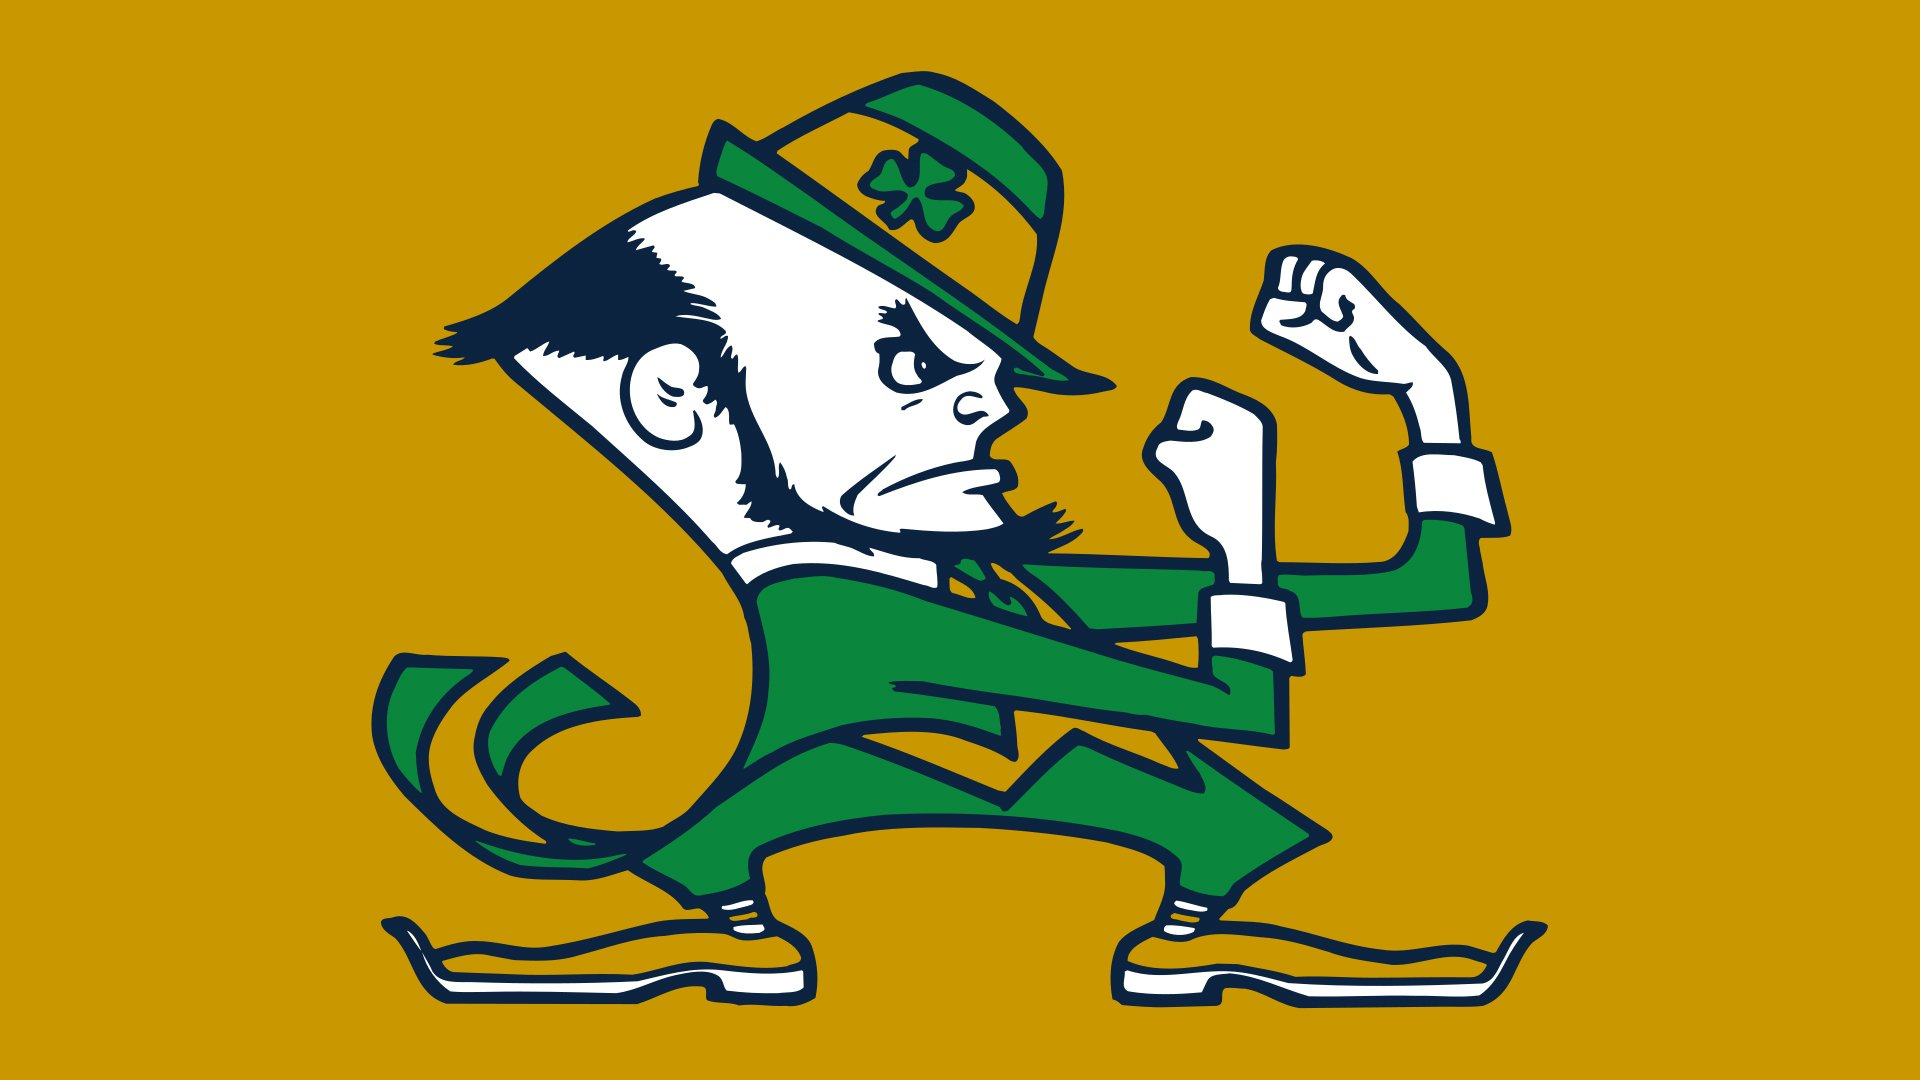 brandchannel: Forget Texas - Don't Mess With the Fighting ... |Fighting Irish Leprechaun